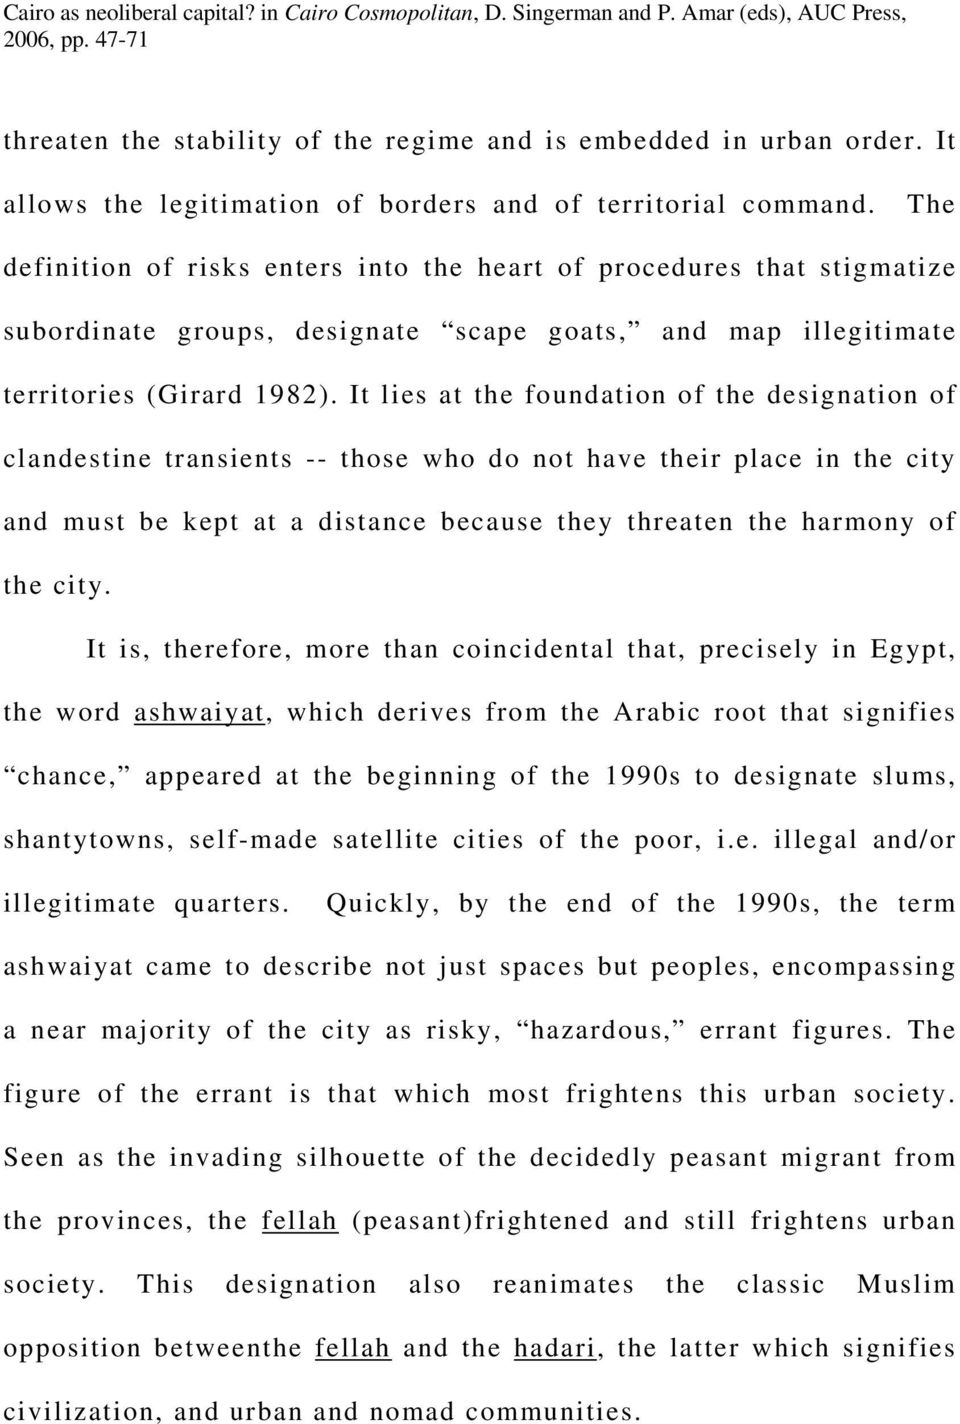 It lies at the foundation of the designation of clandestine transients -- those who do not have their place in the city and must be kept at a distance because they threaten the harmony of the city.